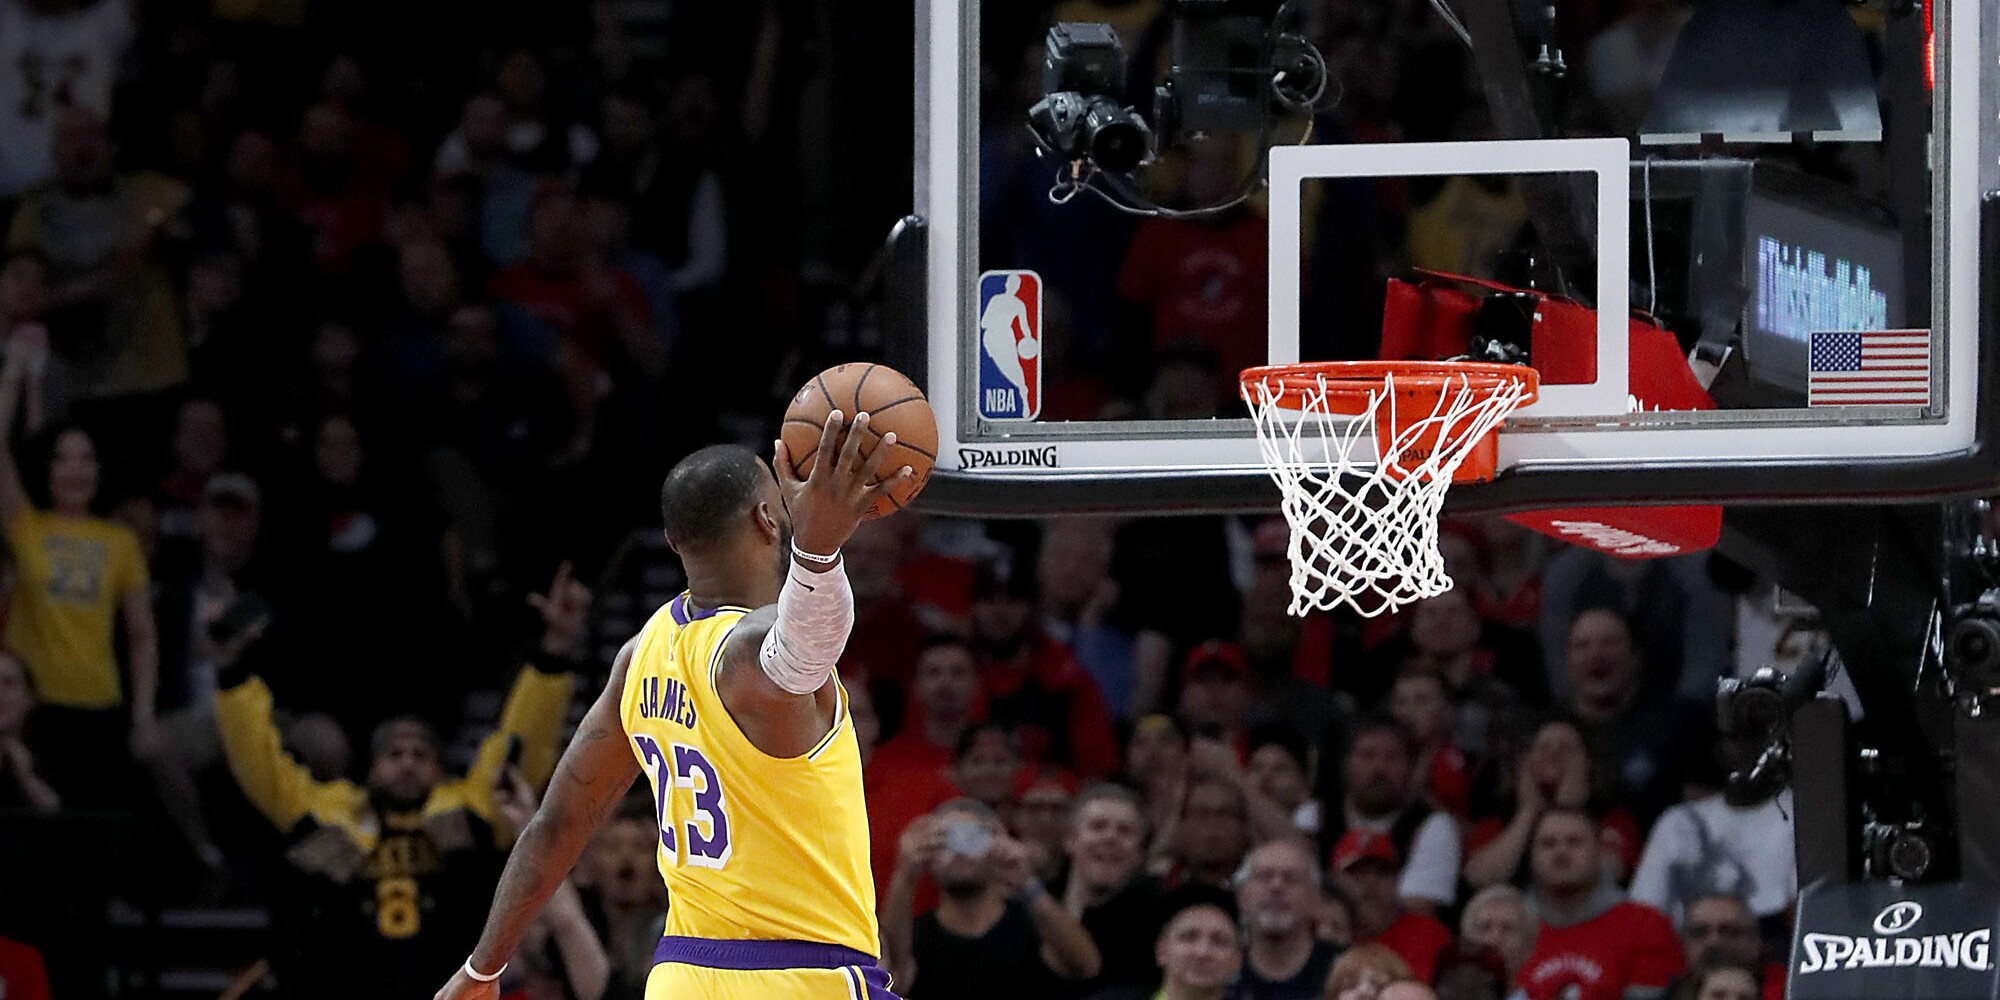 Live updates: There's a melee, punches and ejections before Lakers fall to Rockets